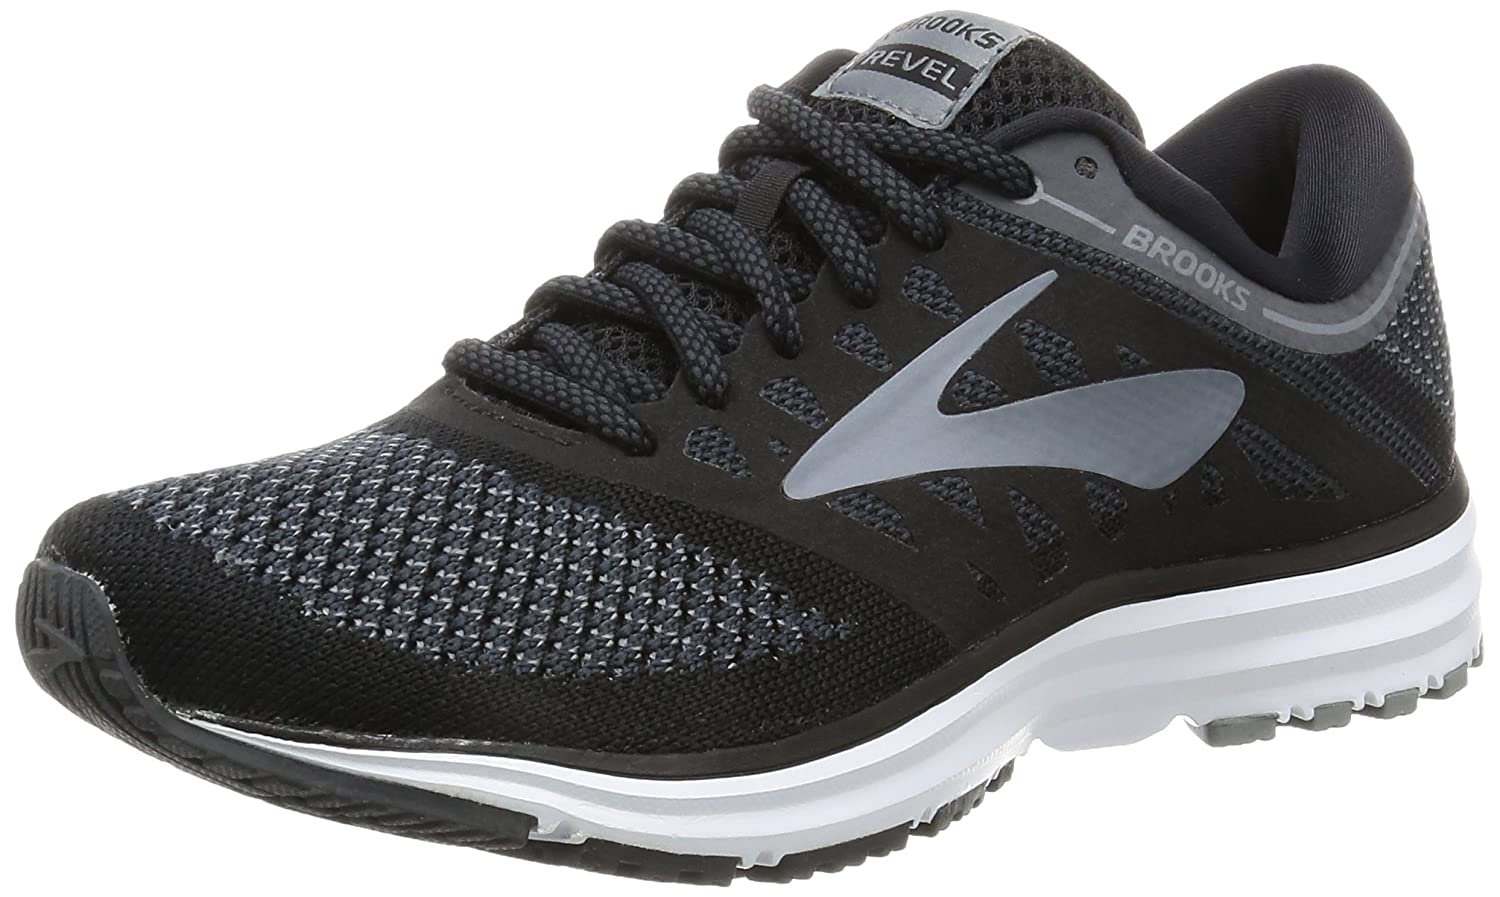 Brooks Womens Revel B01N3Q20GN 6.5 B(M) US|Black/Anthracite/Primer Grey